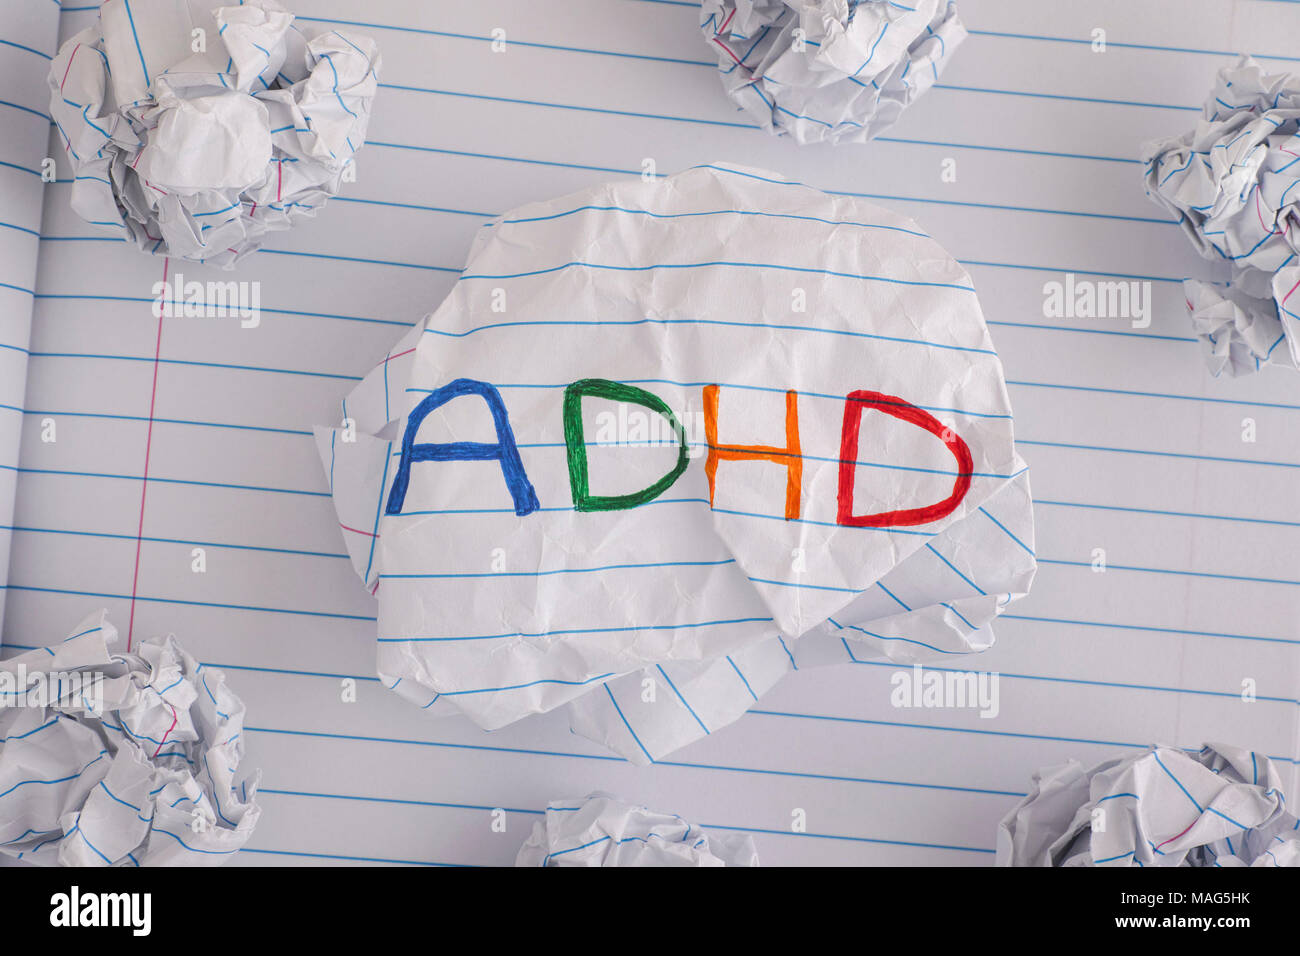 ADHD. Abbreviation ADHD on crumpled paper ball. Close up. ADHD is Attention deficit hyperactivity disorder. - Stock Image